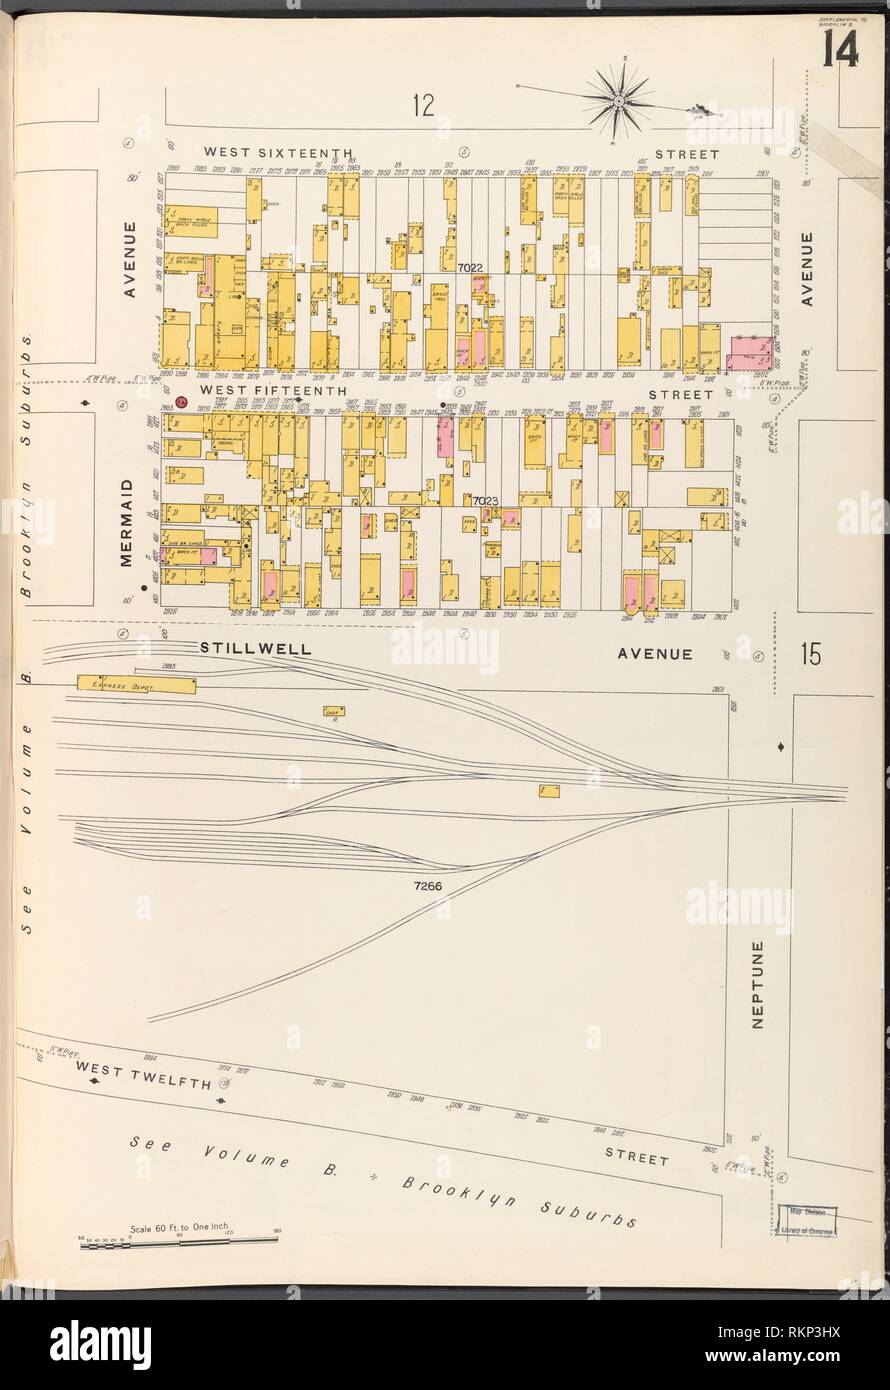 medium resolution of brooklyn vol b plate no 14 map bounded by w 16th st